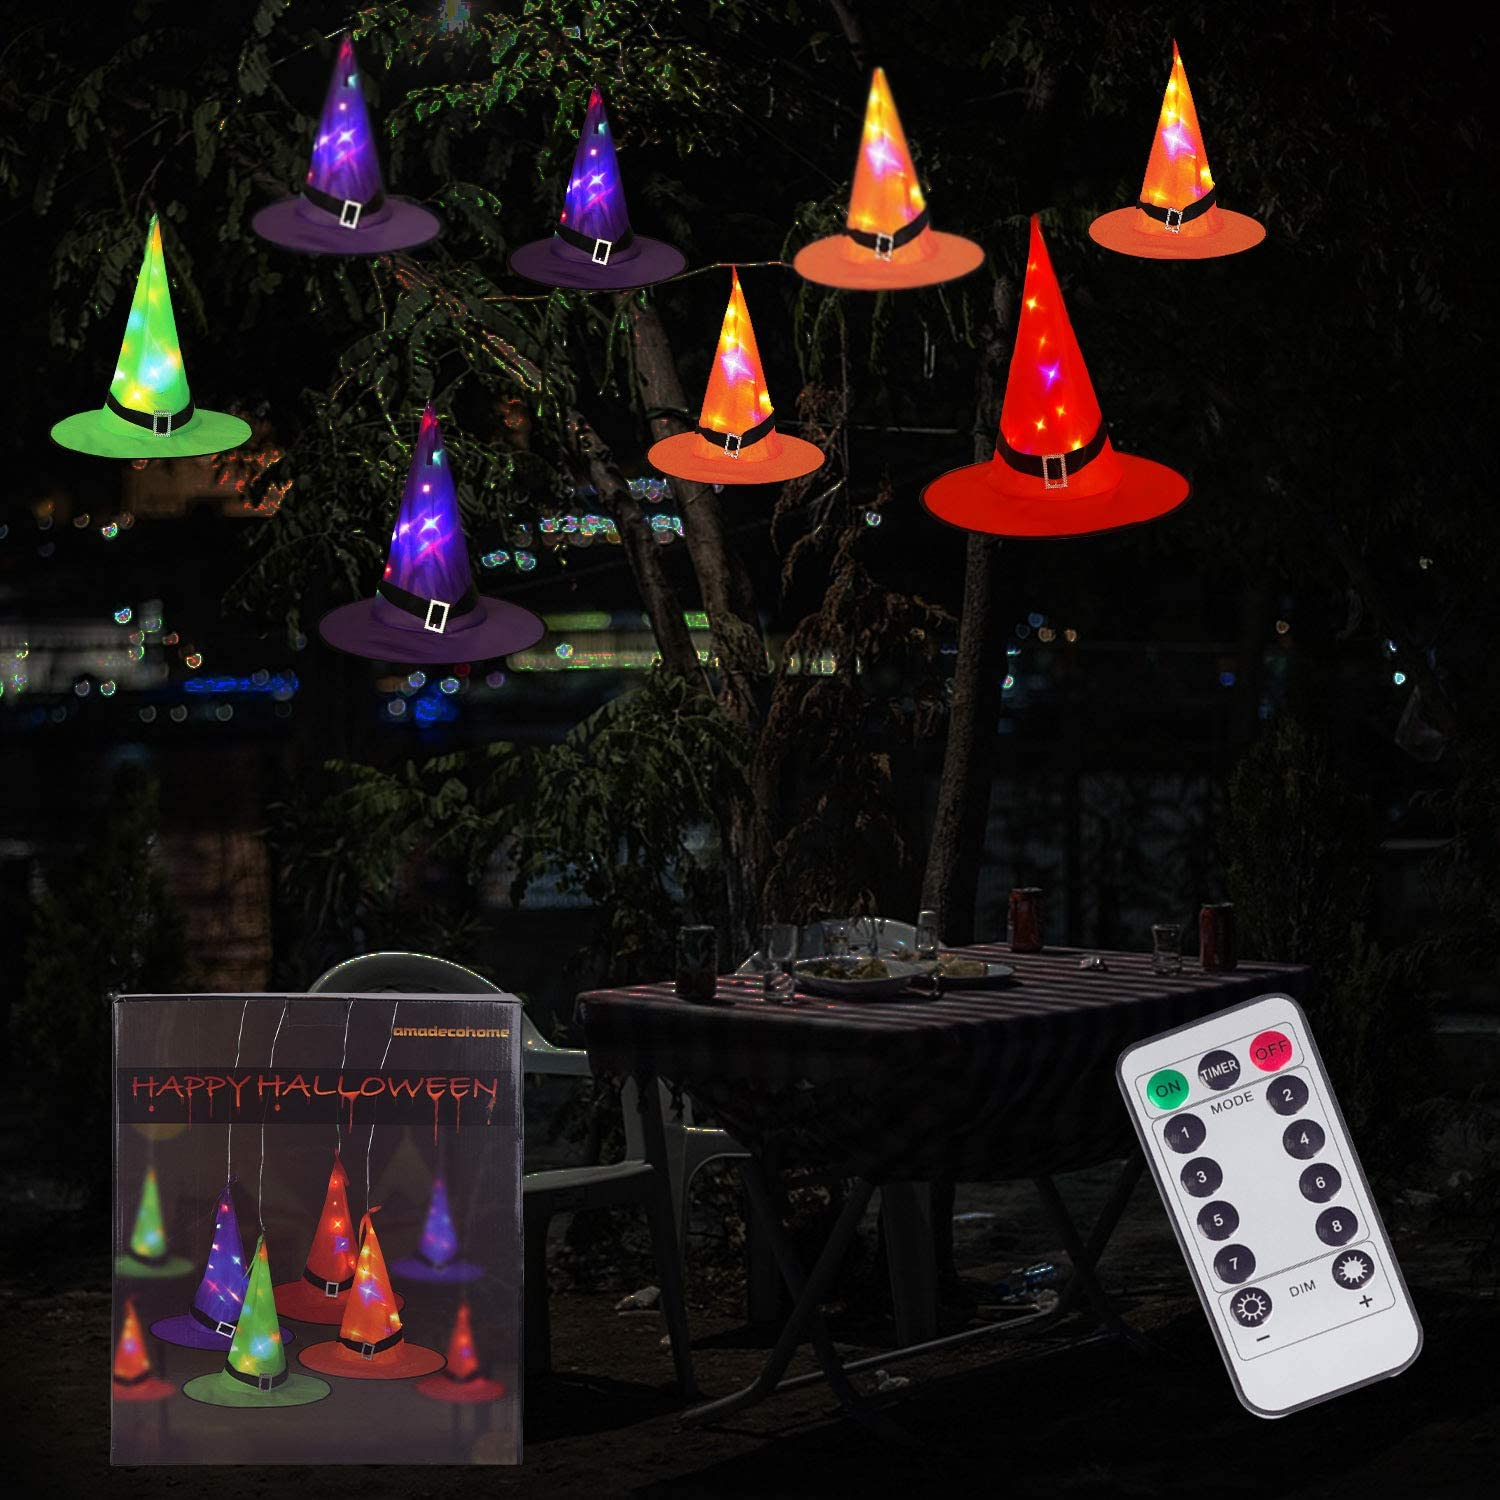 Halloween Decorations 8Pcs Glowing Witch Hats String Light Battery Operated Halloween String Lights for Indoor and Outdoor